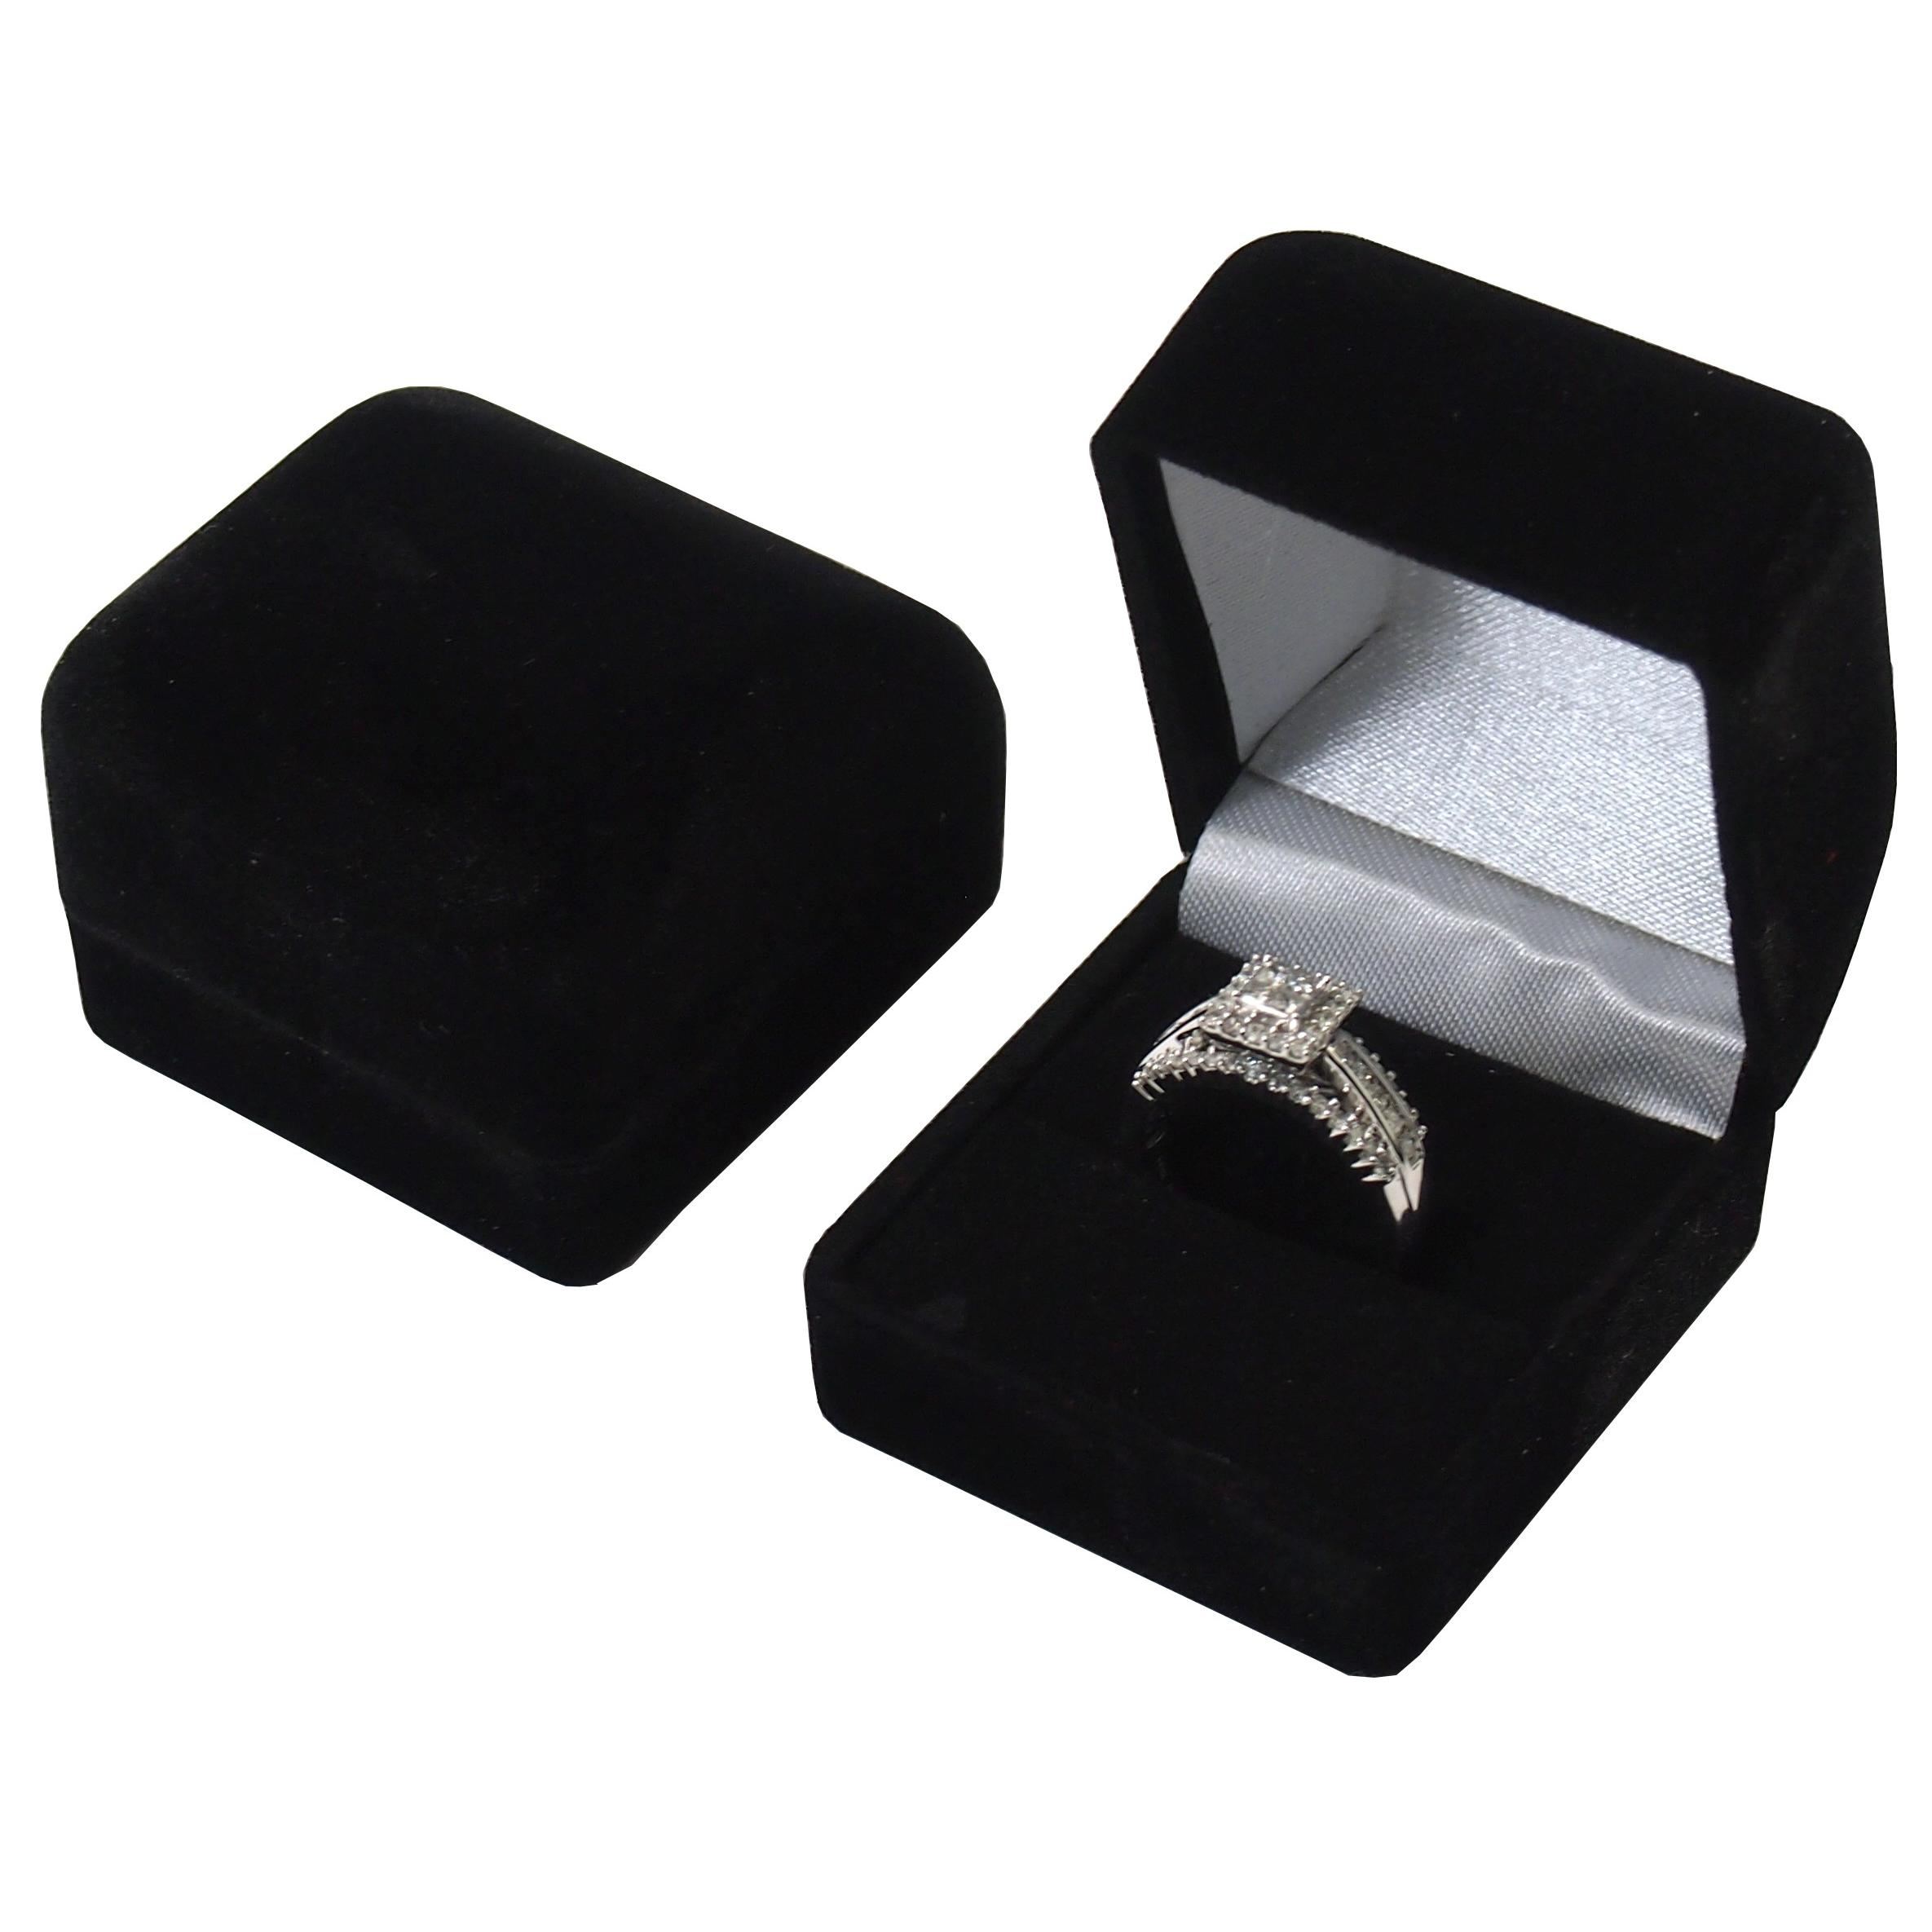 Black Gift Boxes 2 Black Flocked Ring Gift Boxes Jewelry Displays